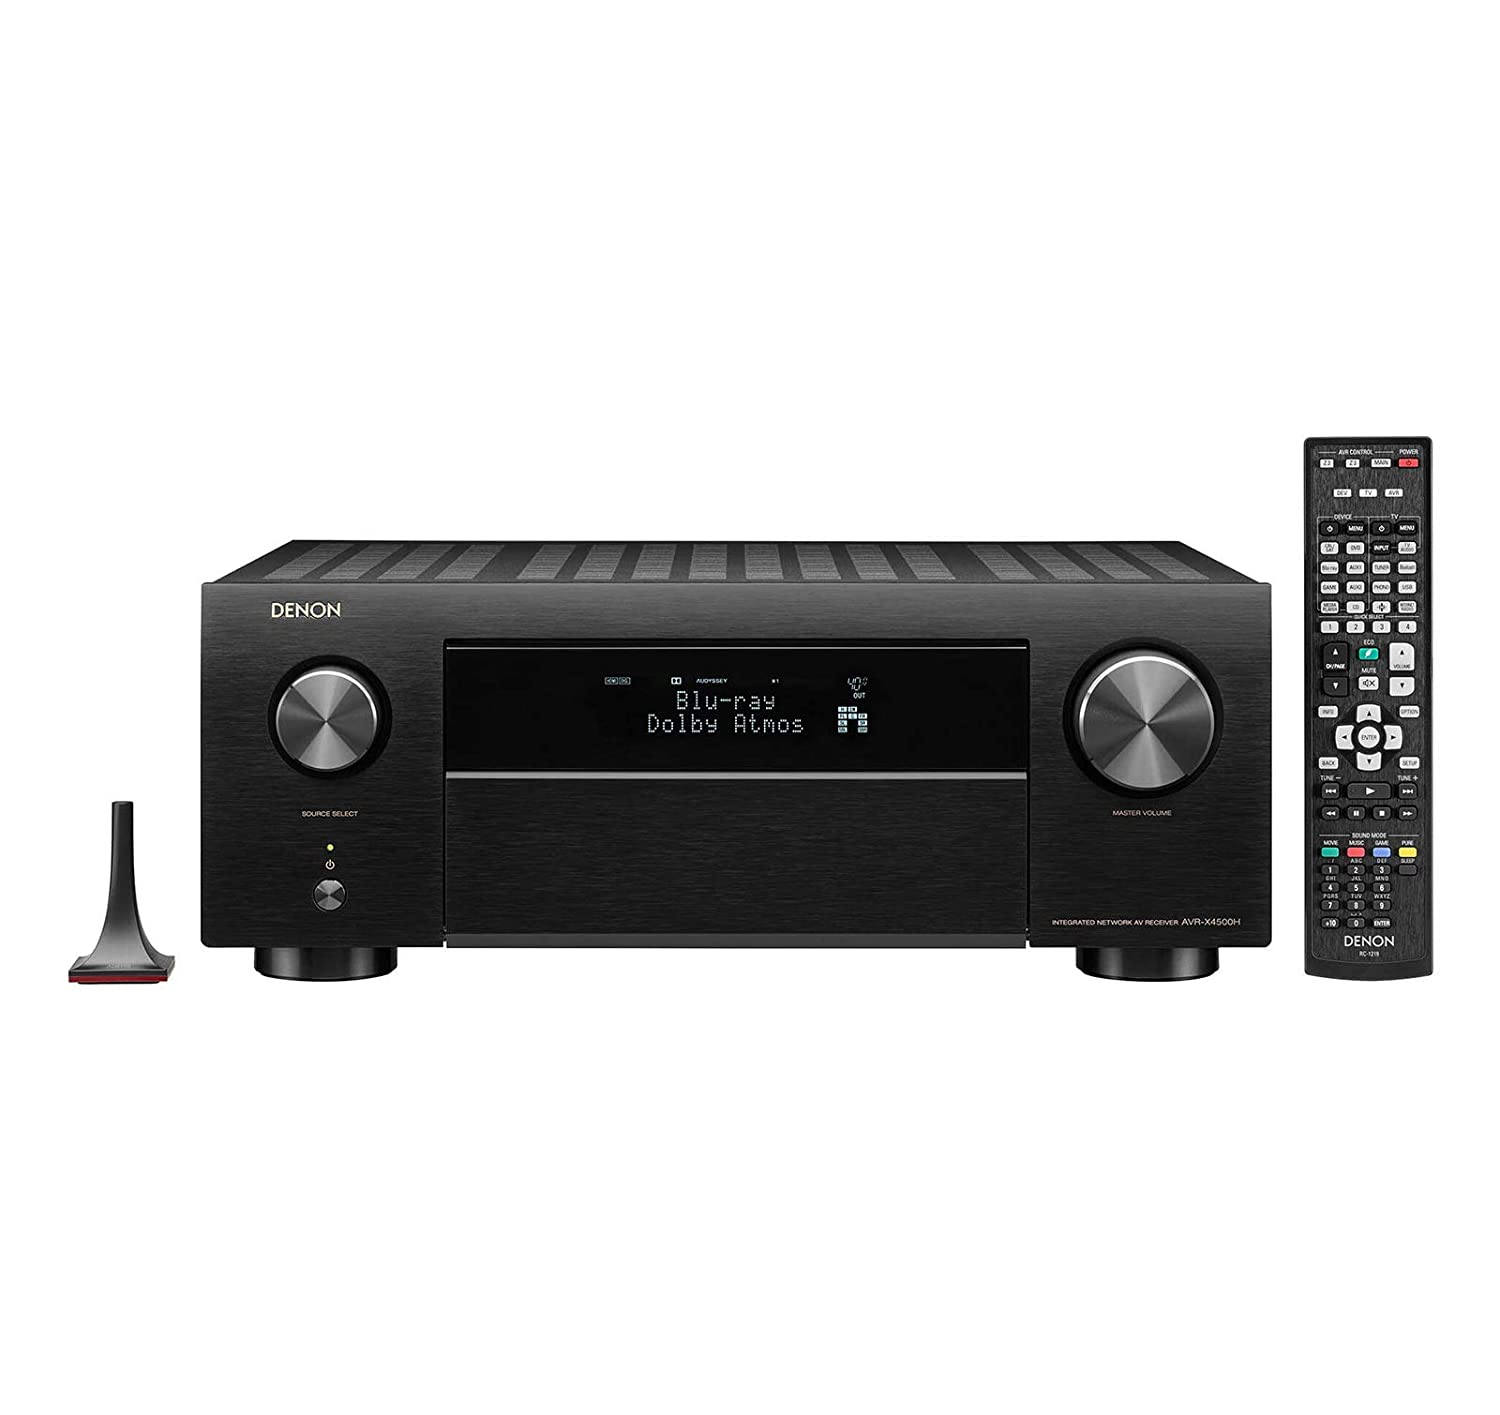 Denon AVRX4500H Denon 9.2 Channel 4K AV Receiver with 3D Audio and Alexa Voice Control, Black (Certified Refurbished)